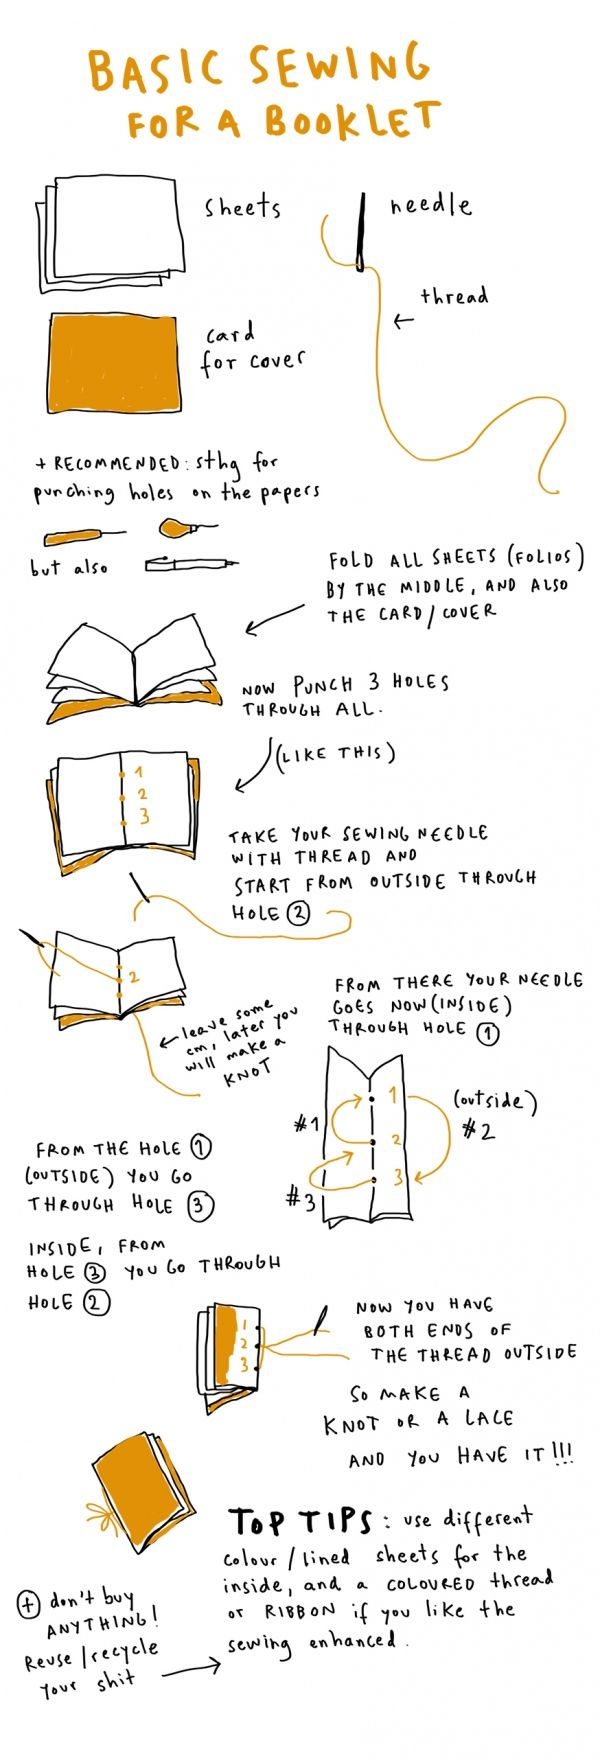 Basic Sewing for a Booklet: Bookbinding Instructions #2 / Merge Leon: Mercedes Leon, Craft, Idea, Basic Sewing, Bookbinding Instructions, Book Binding, Book Making, Diy